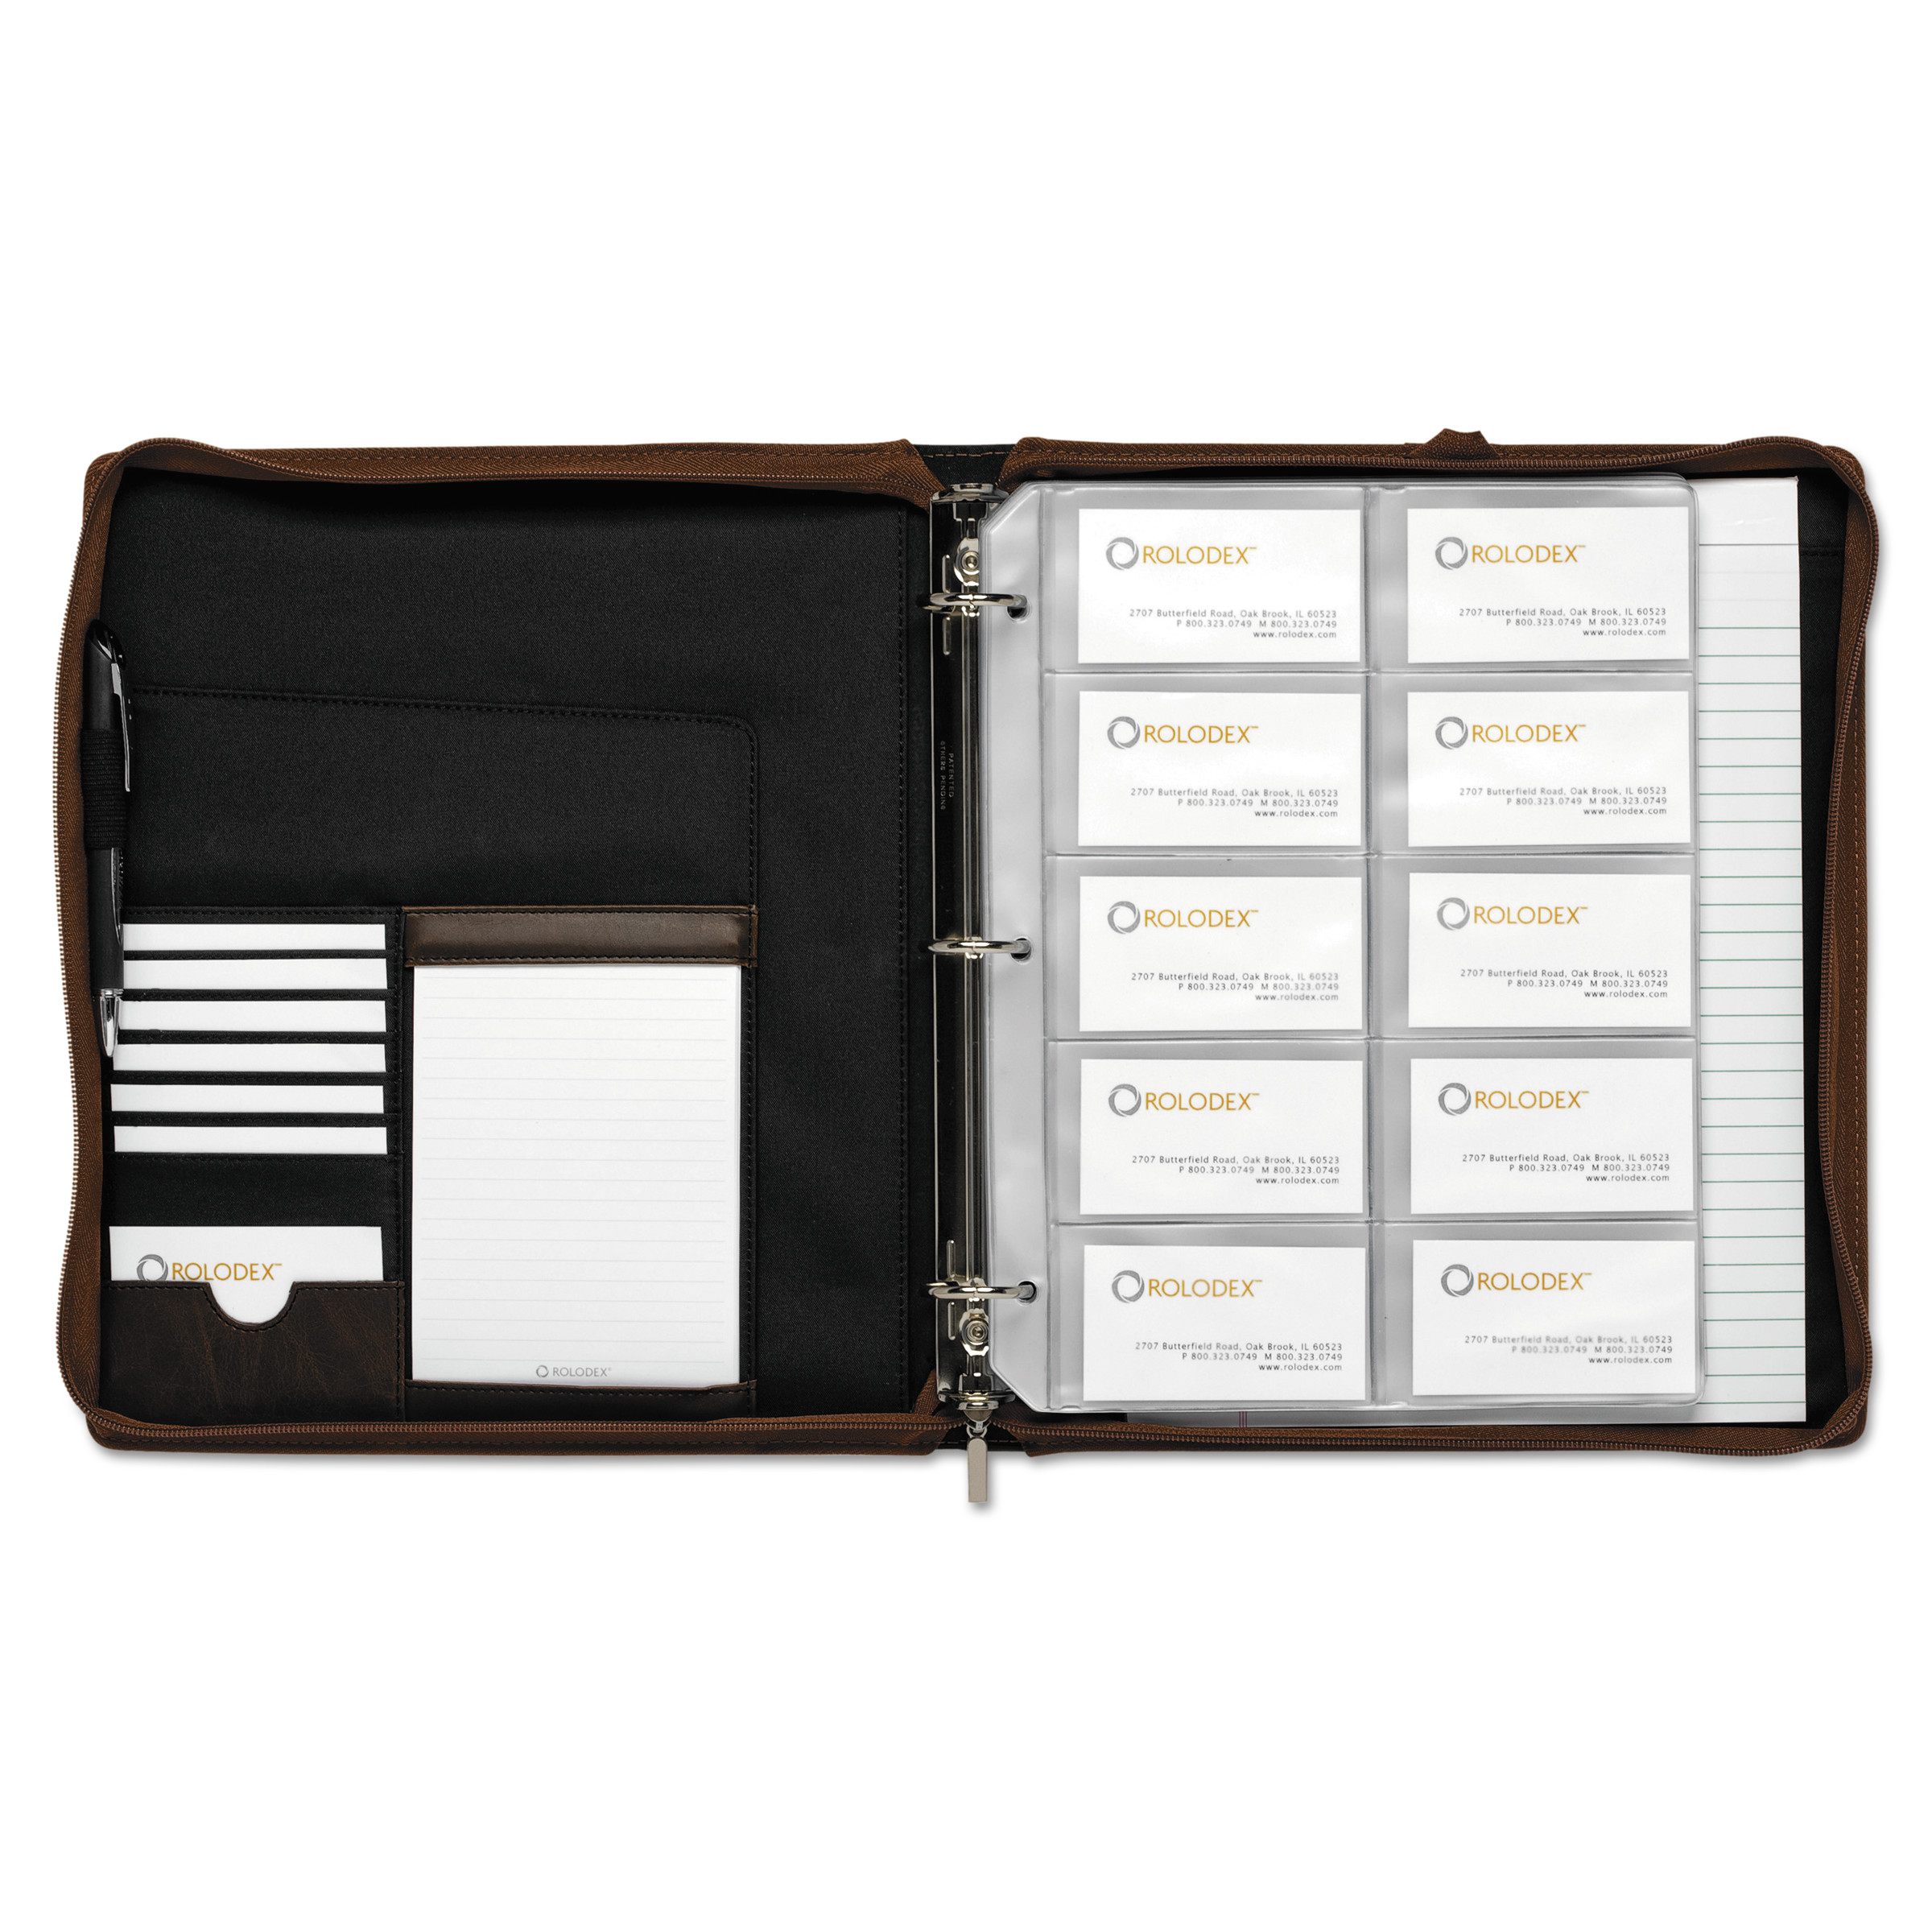 rolodex business card binder rolodex open rotary business card